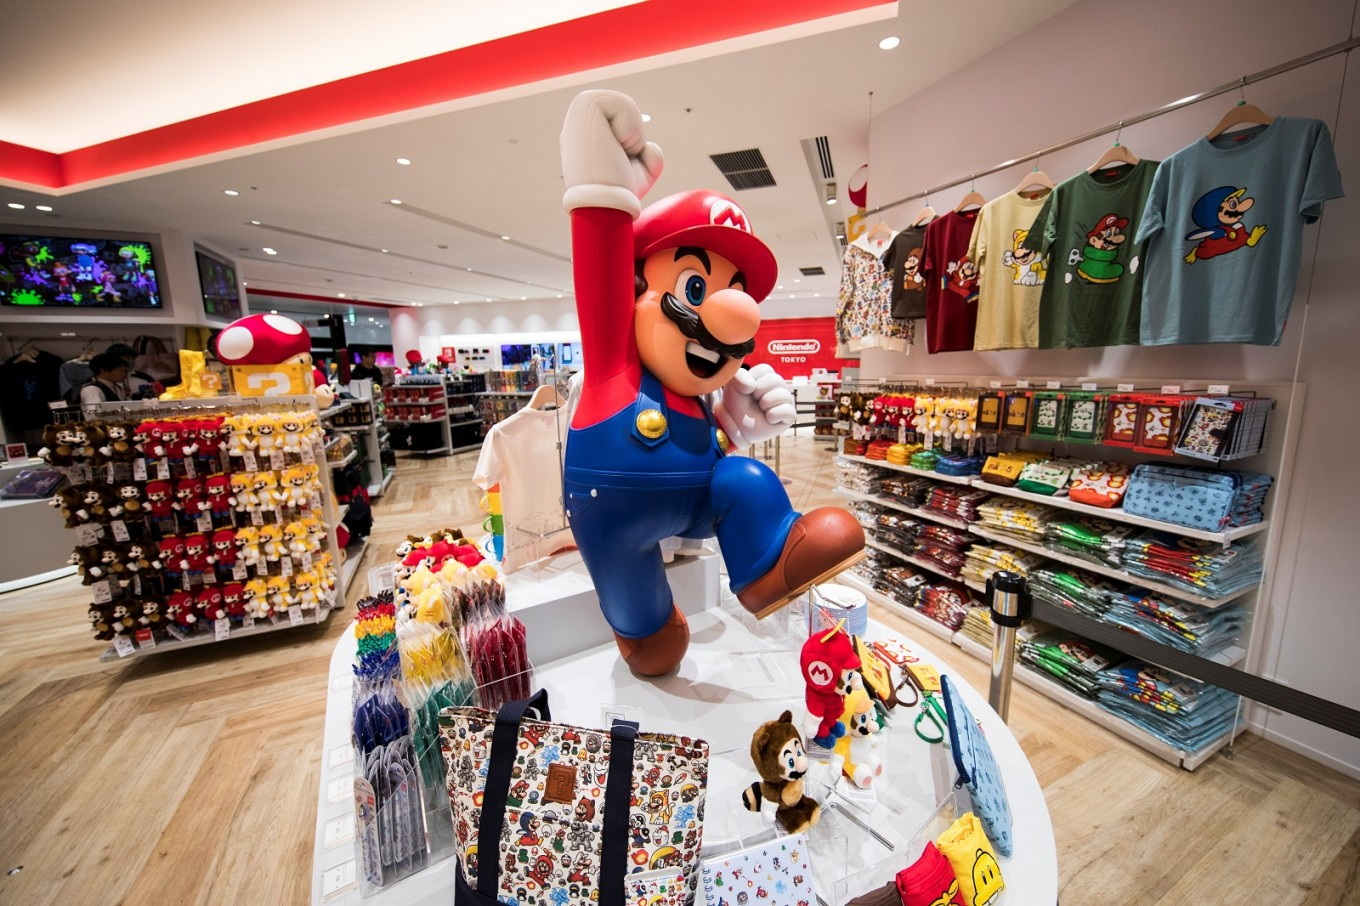 Nintendo's Tokyo store isn't large enough for its fan base